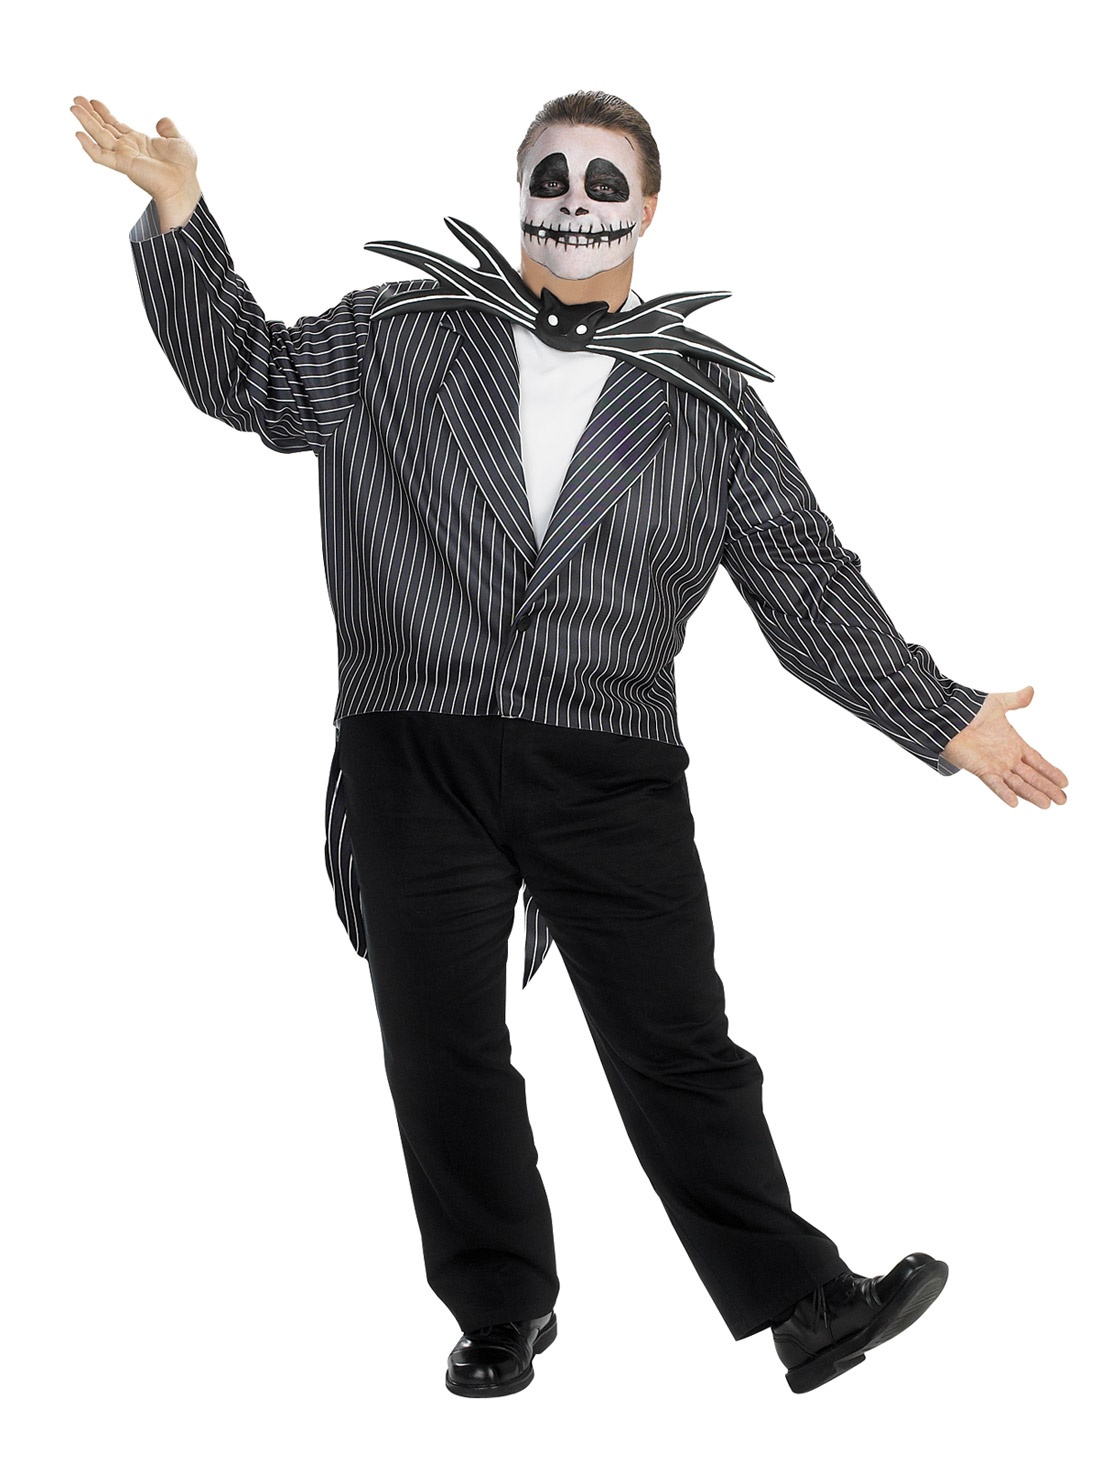 jack skellington costume - photo #3